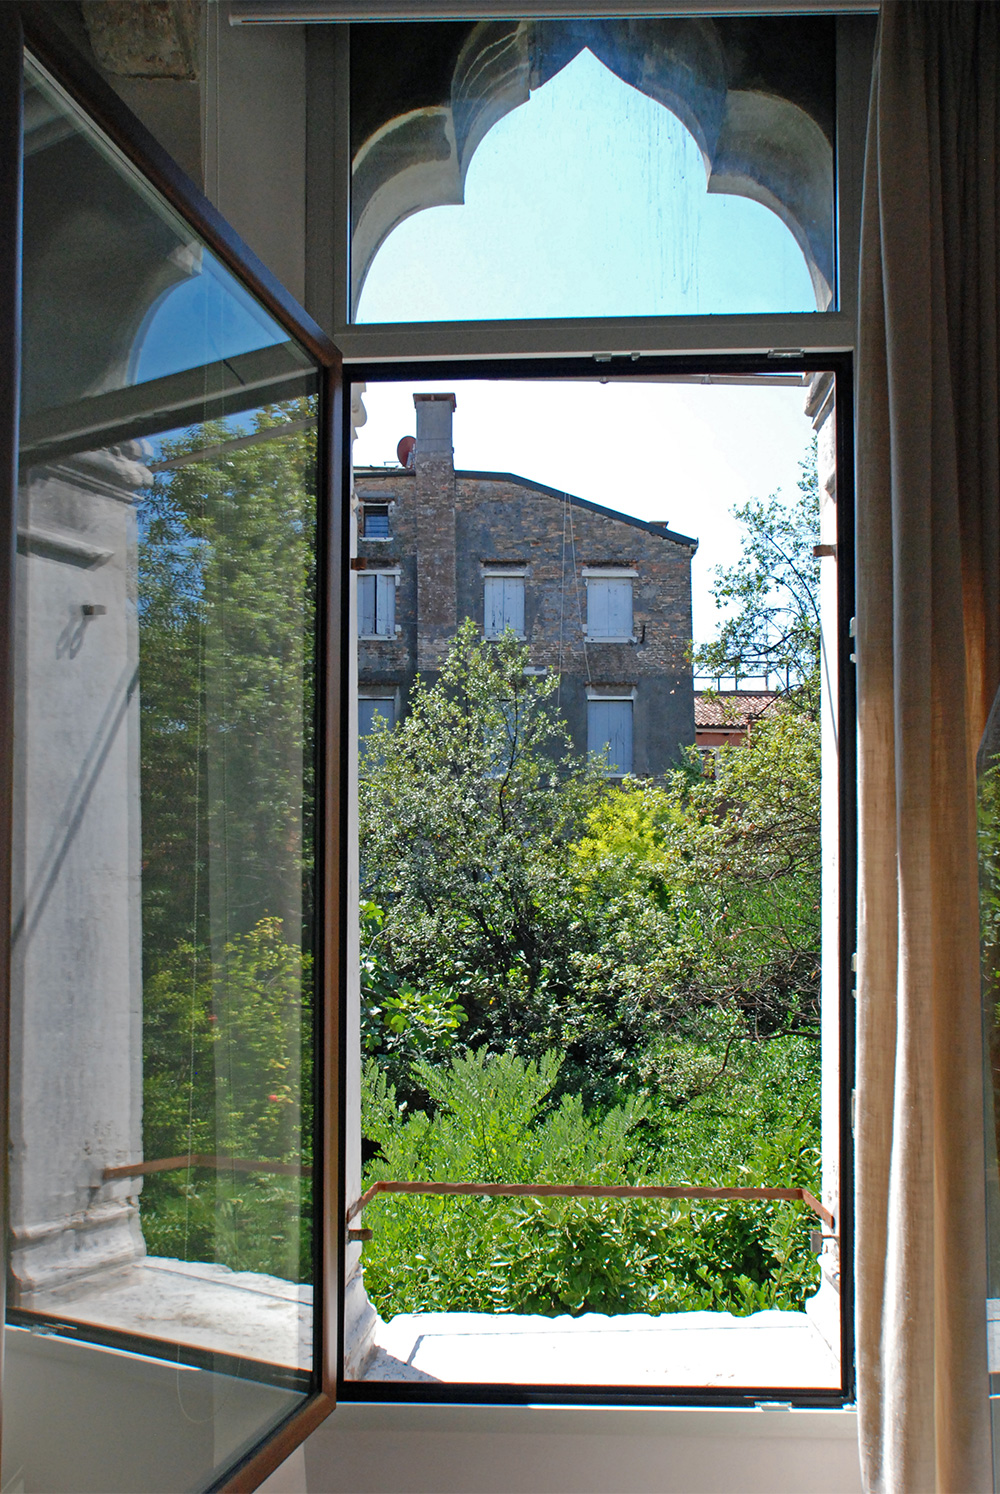 there is a little balcony on the ancient gothic window of the bedroom